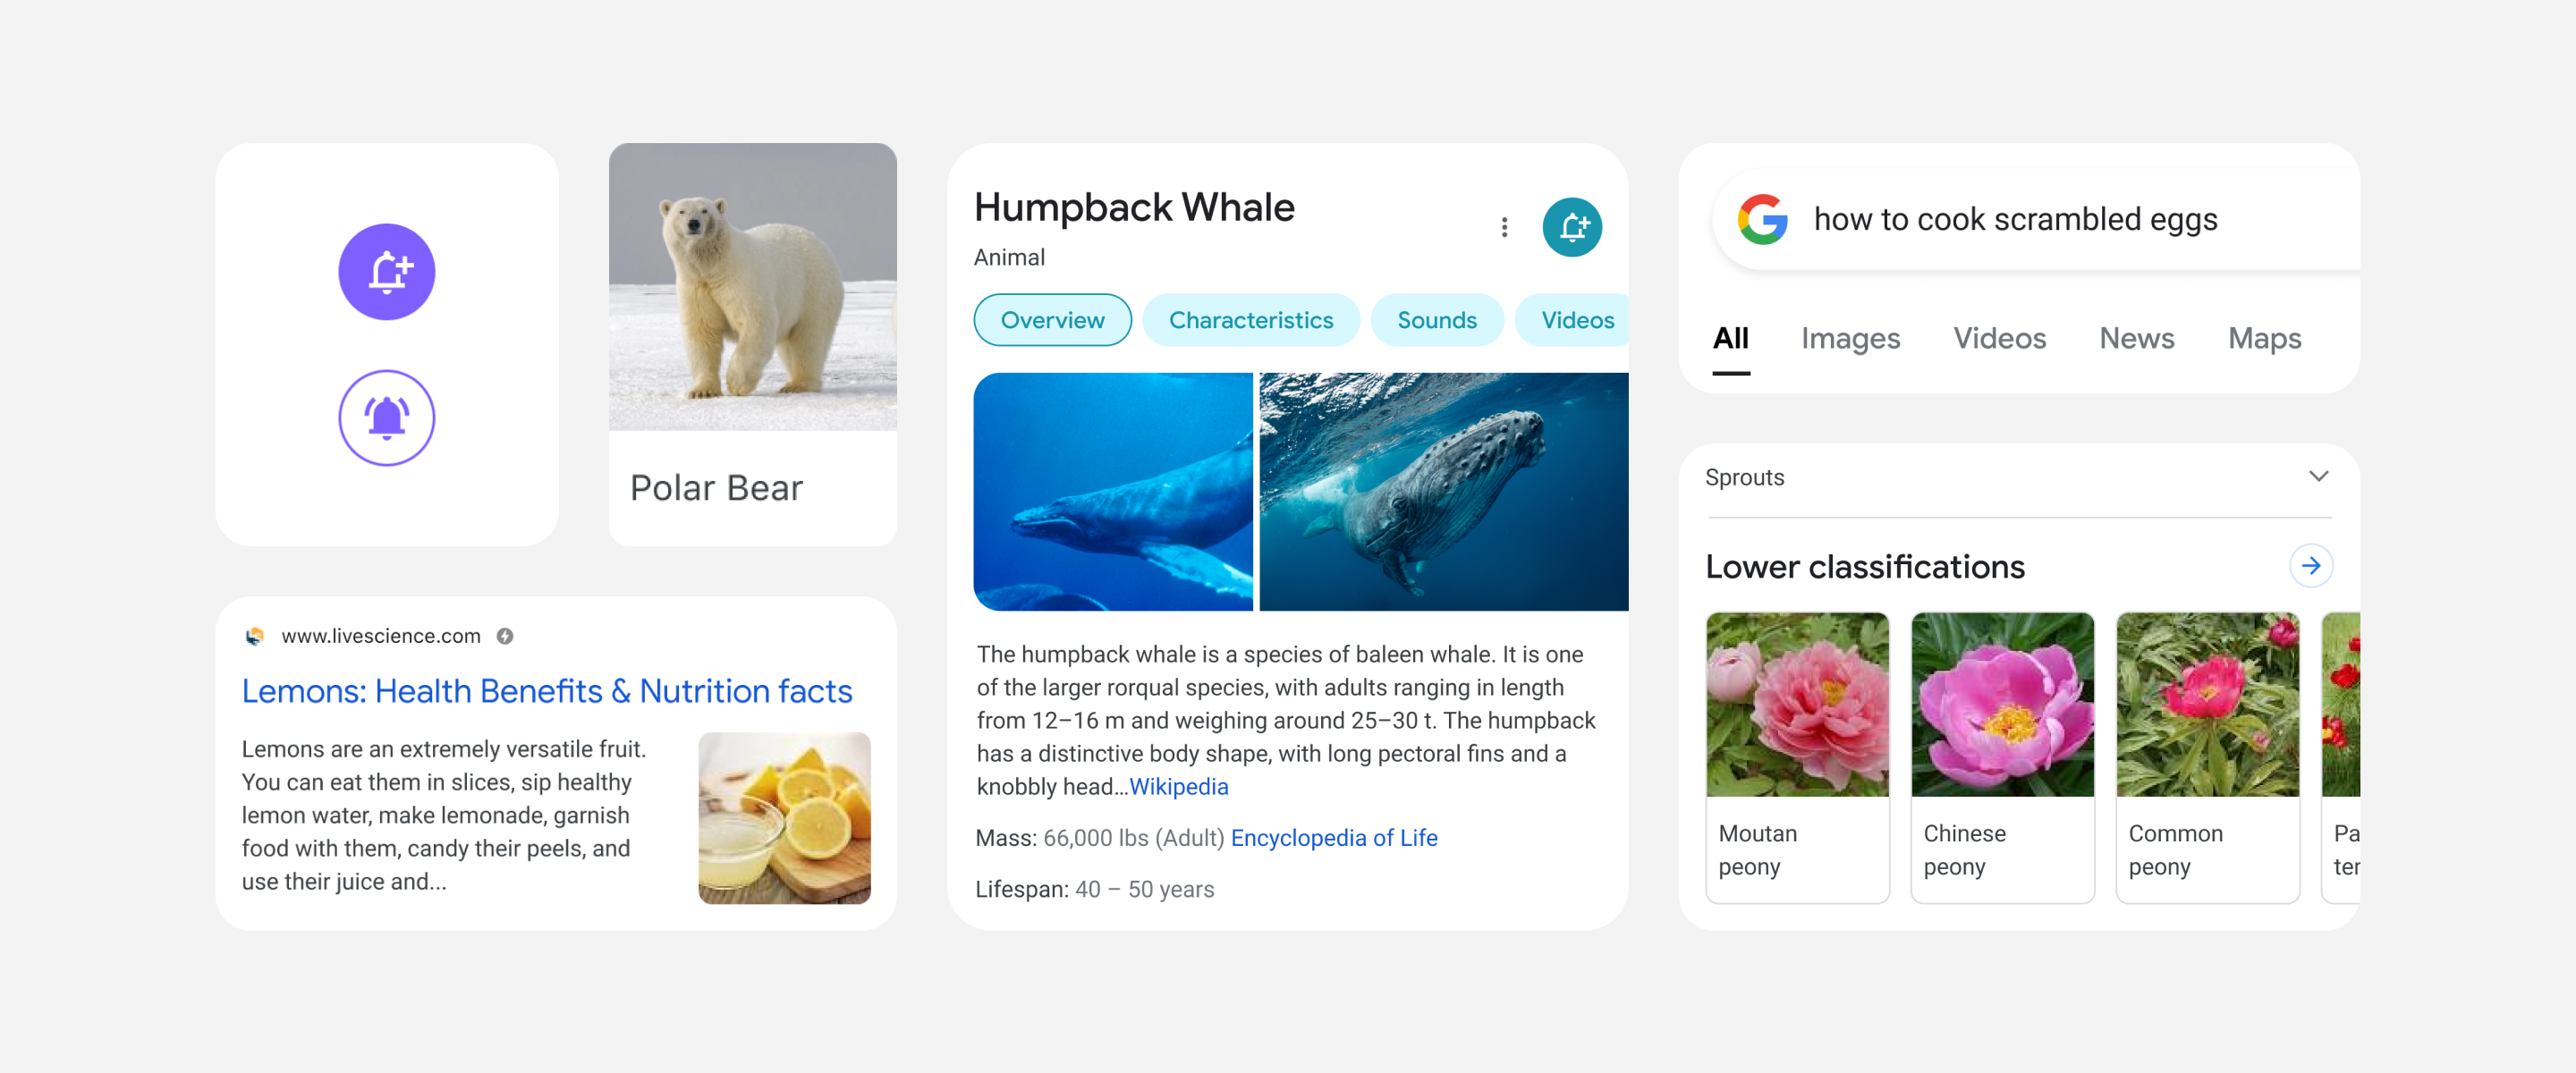 Google refreshes its mobile search experience